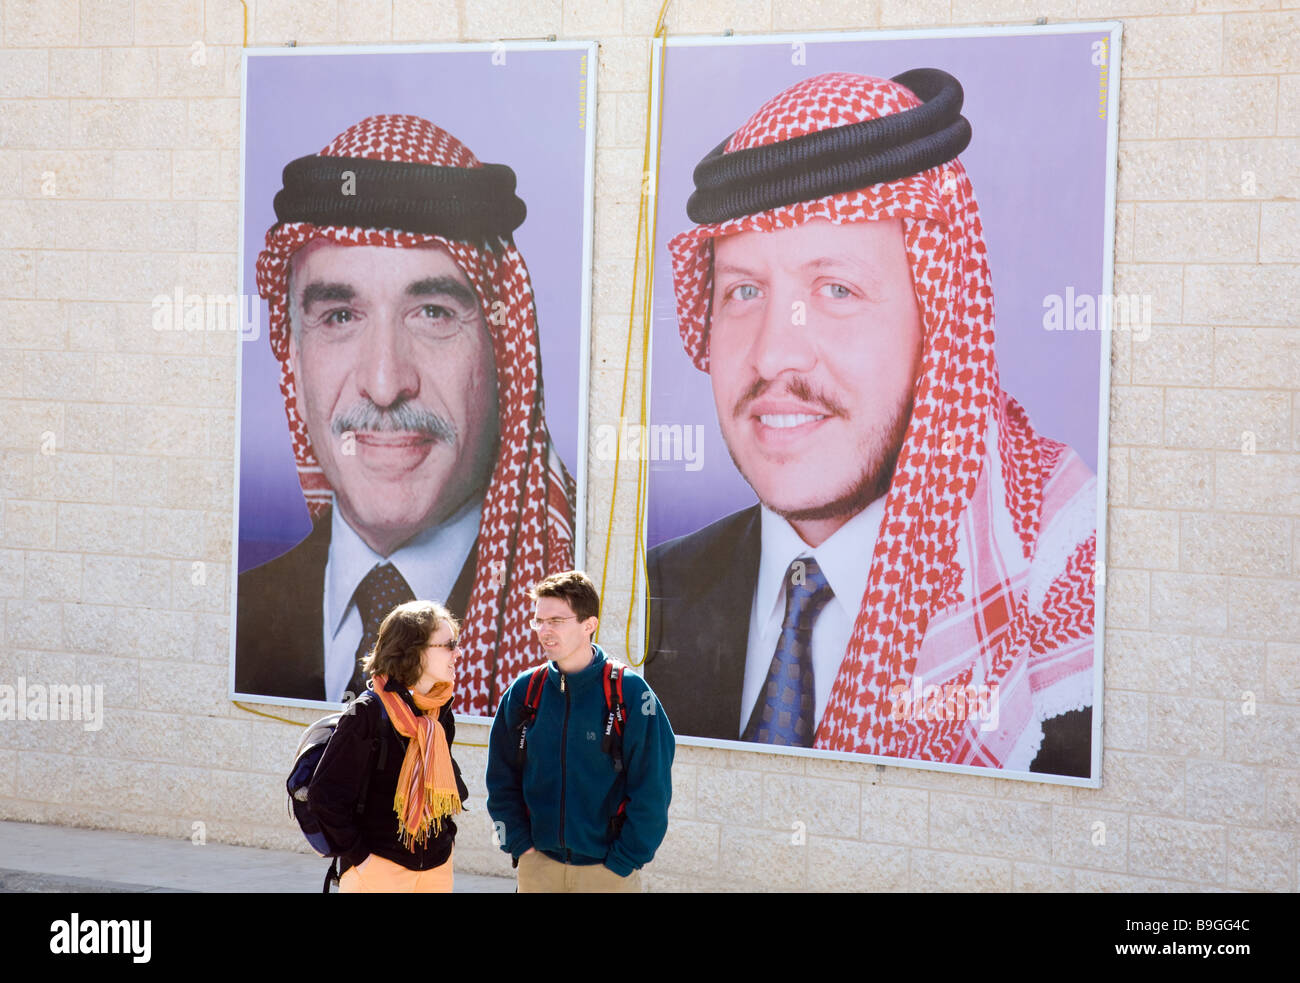 A tourist couple talk in front of posters of King Hussein and his son, King Abdullah of Jordan; jordan, Middle East - Stock Image